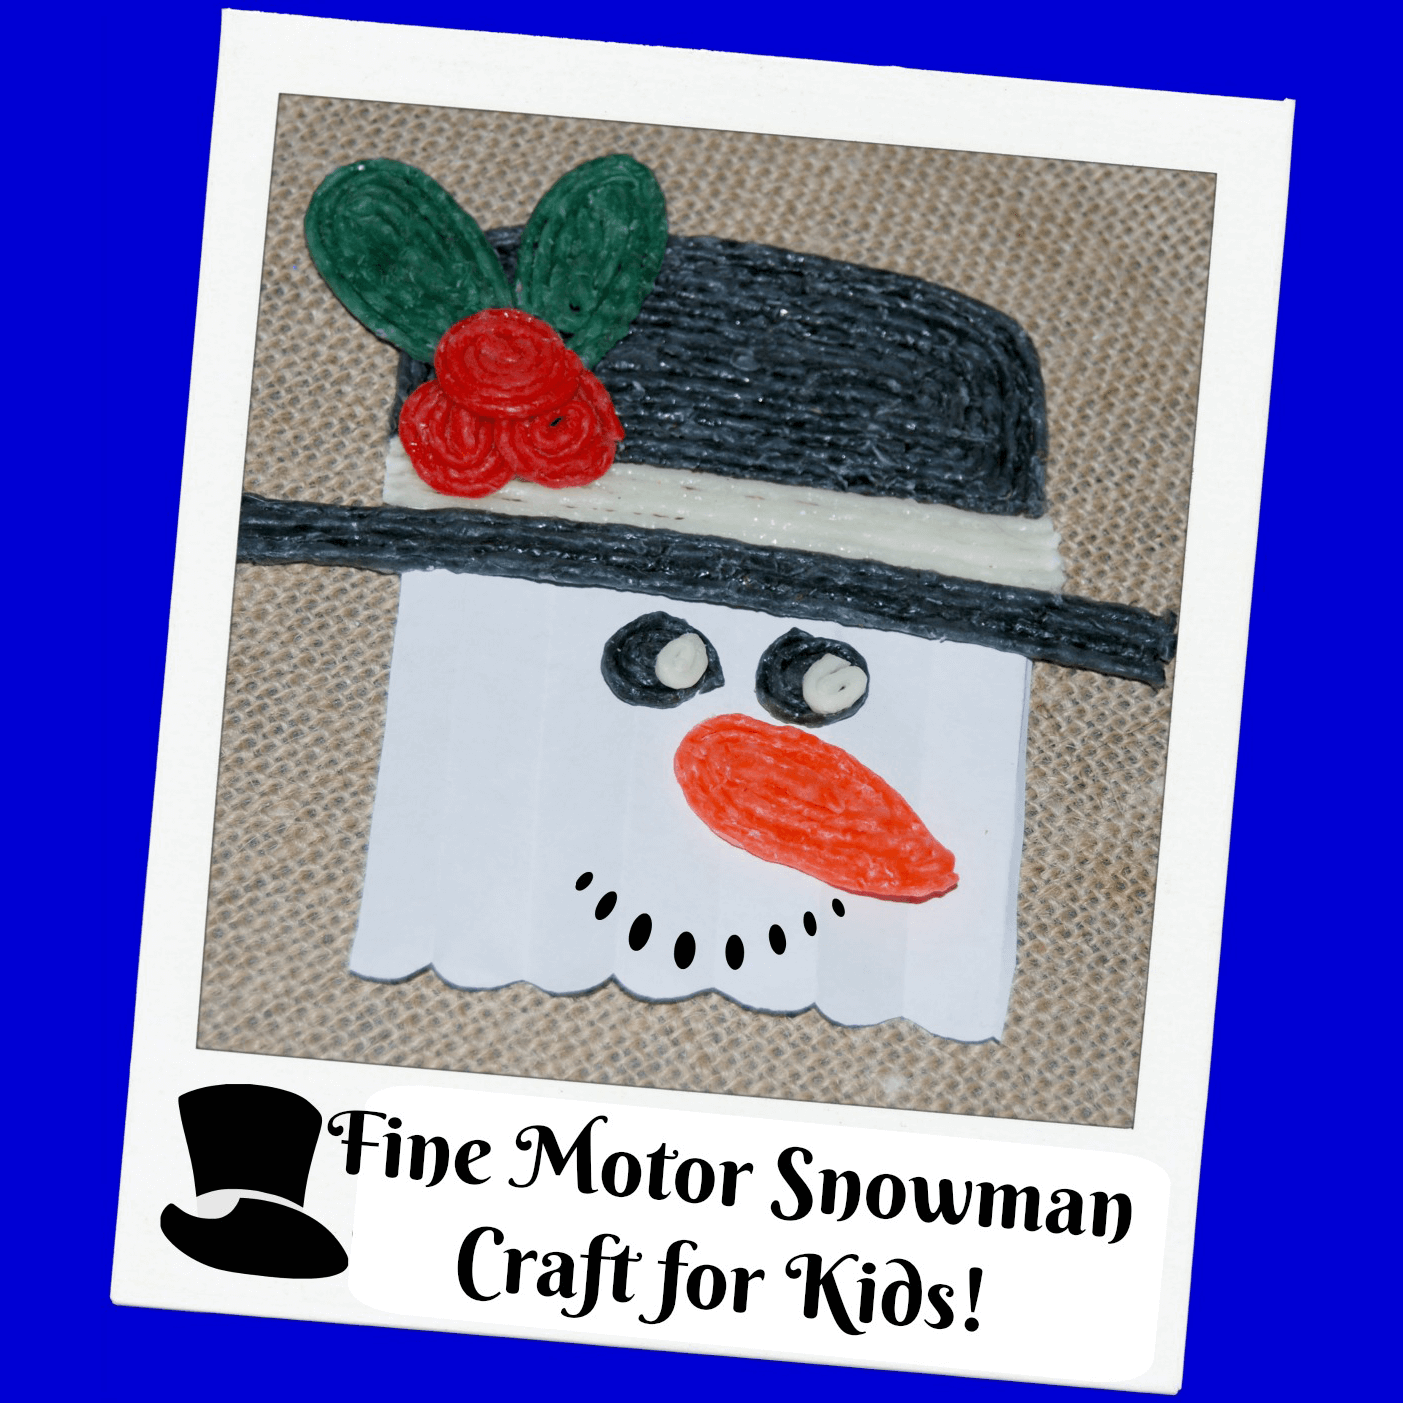 Fine Motor Snowman Craft for Kids